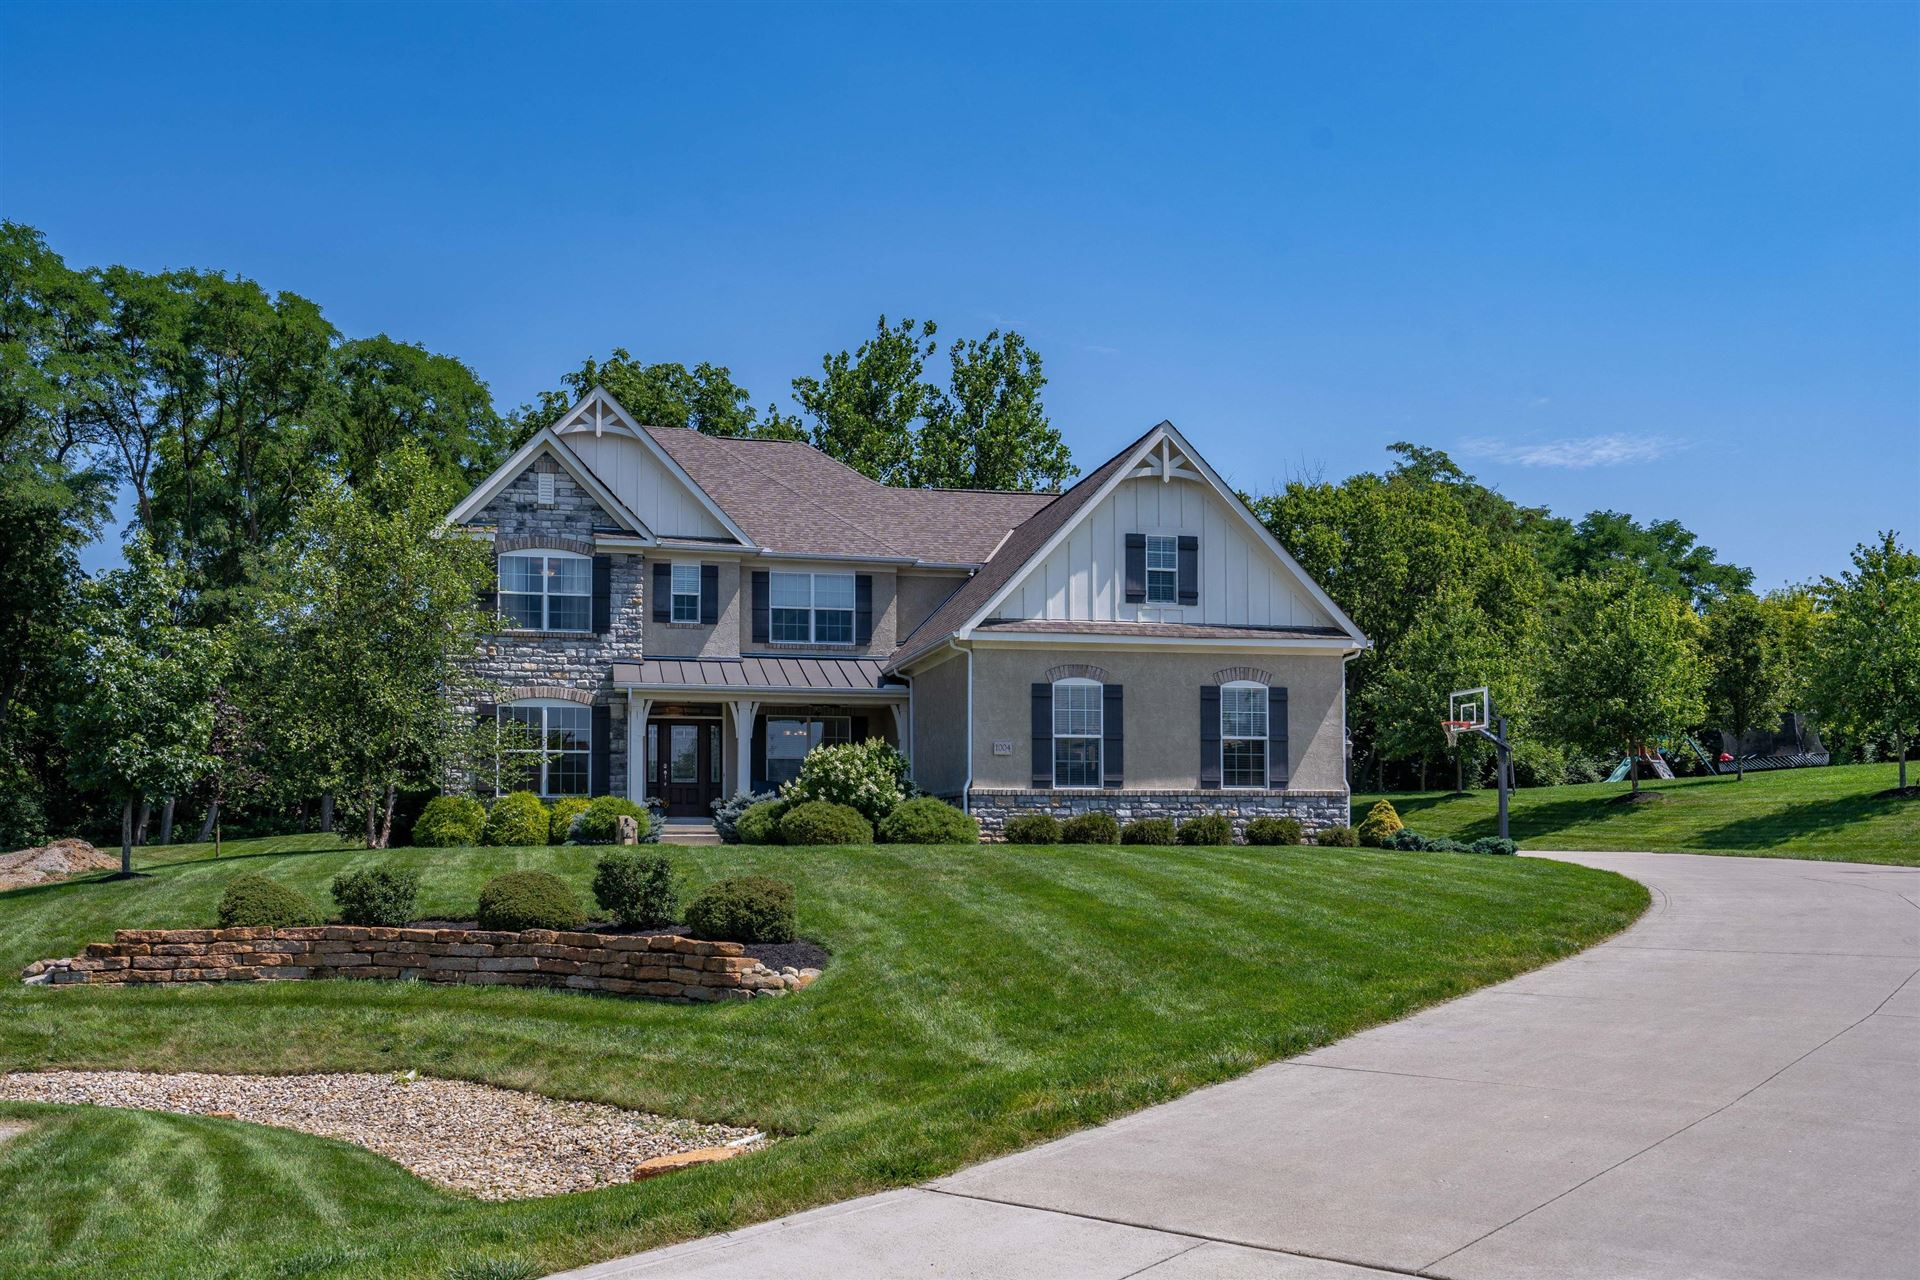 Photo of 1004 Cattail, Delaware, OH 43015 (MLS # 221028652)